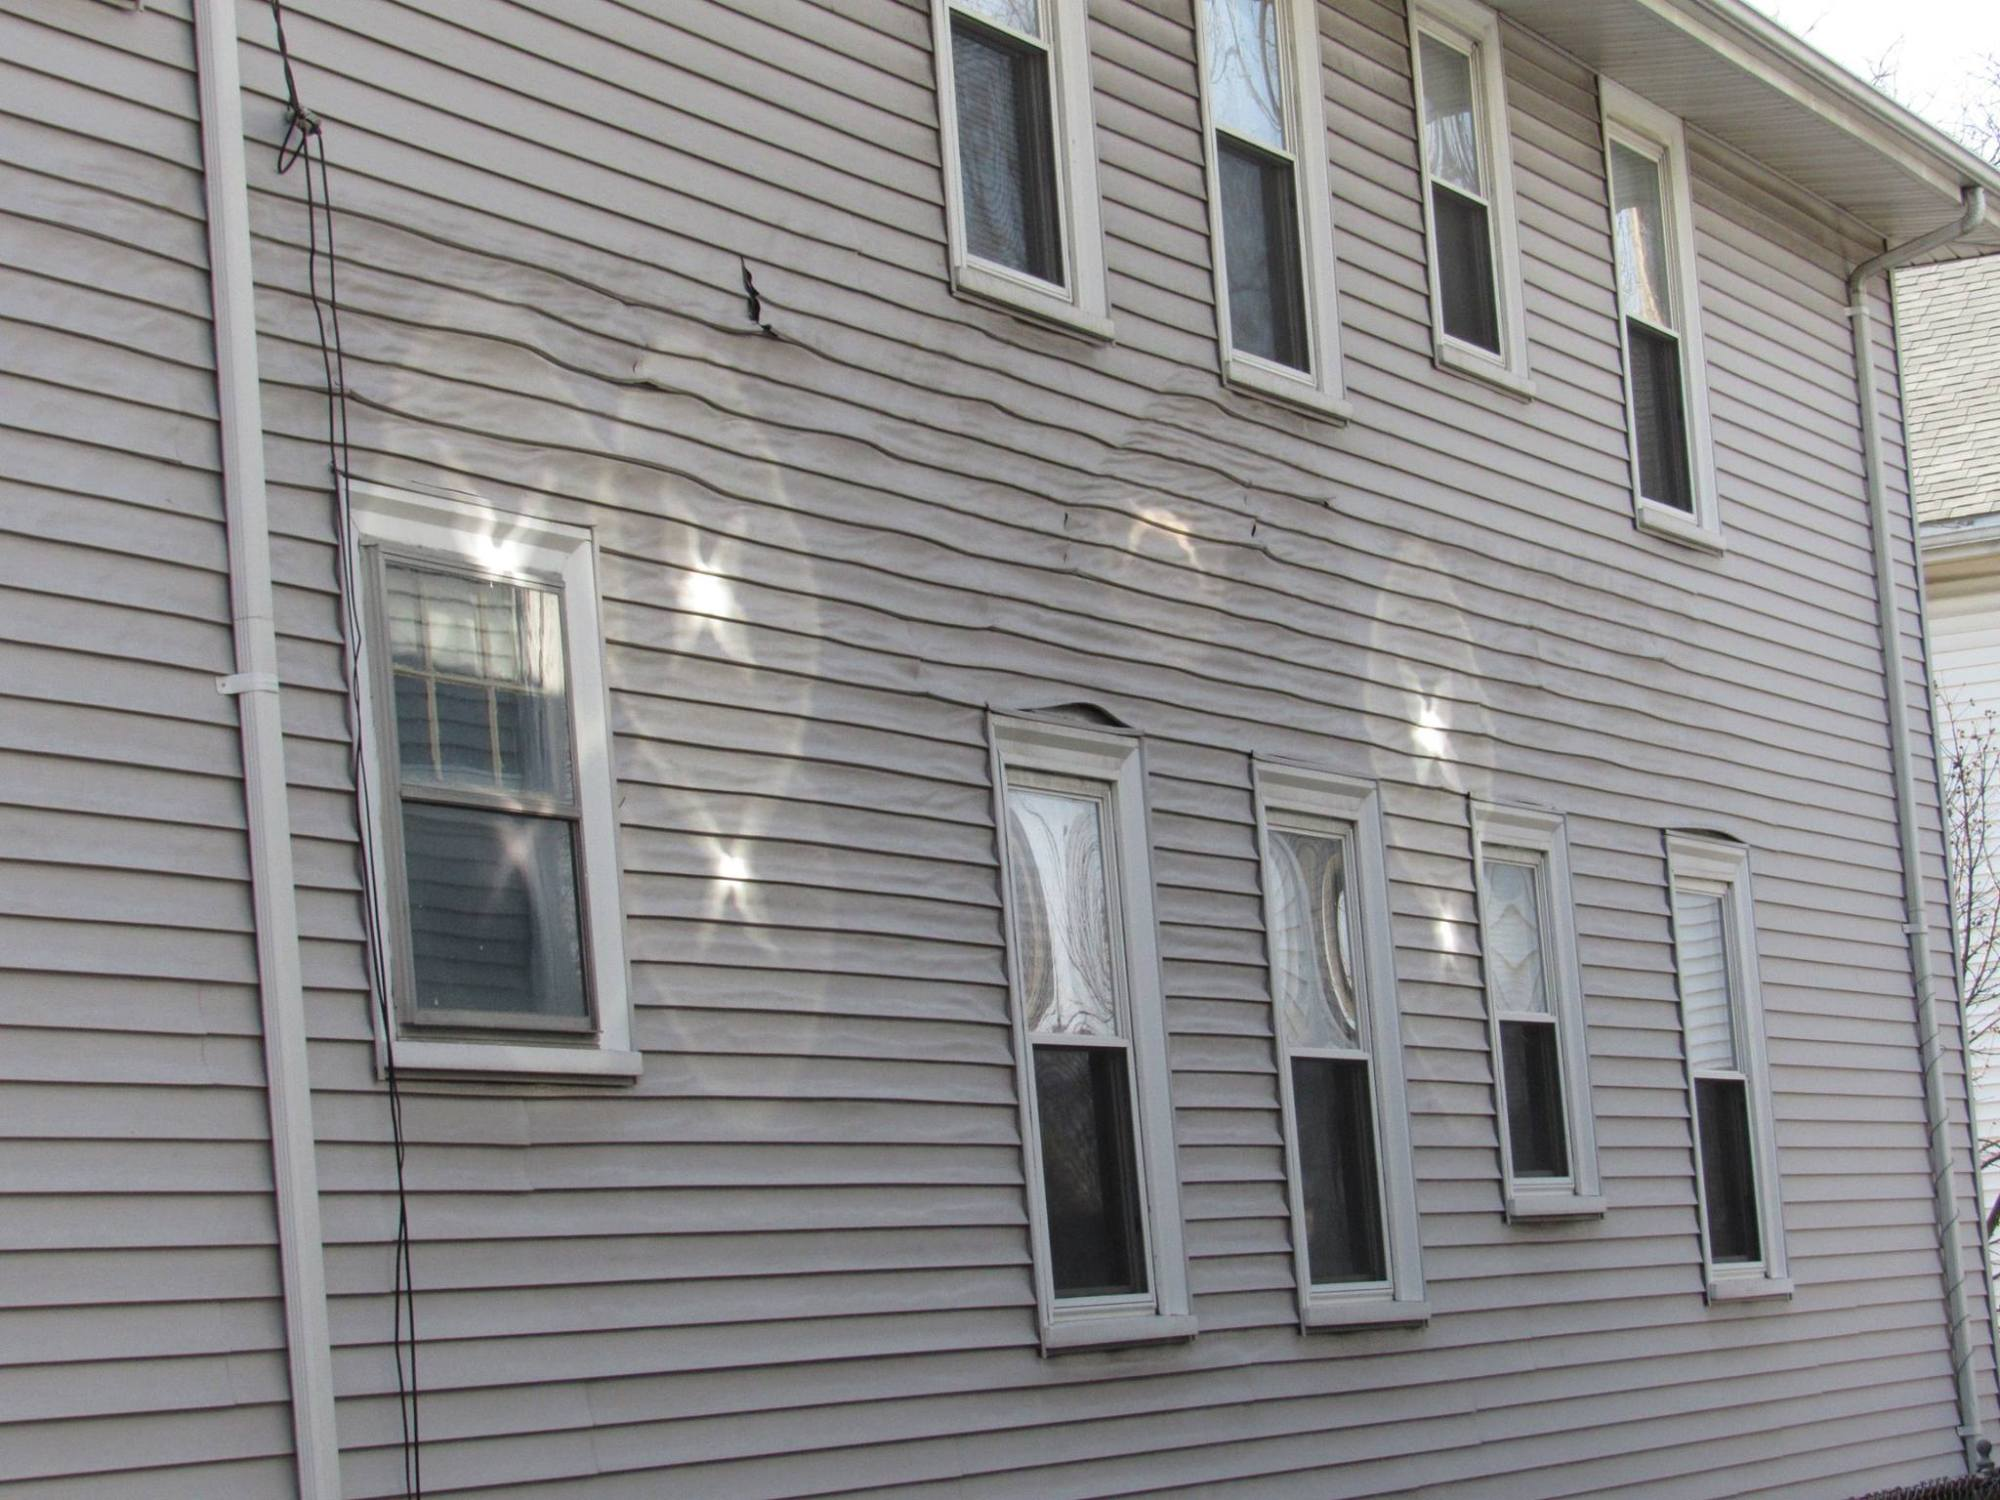 hight resolution of  diagram youtube house wiring 220 switch they did what crazy home inspection photos from 2016 startribune commelted vinyl siding